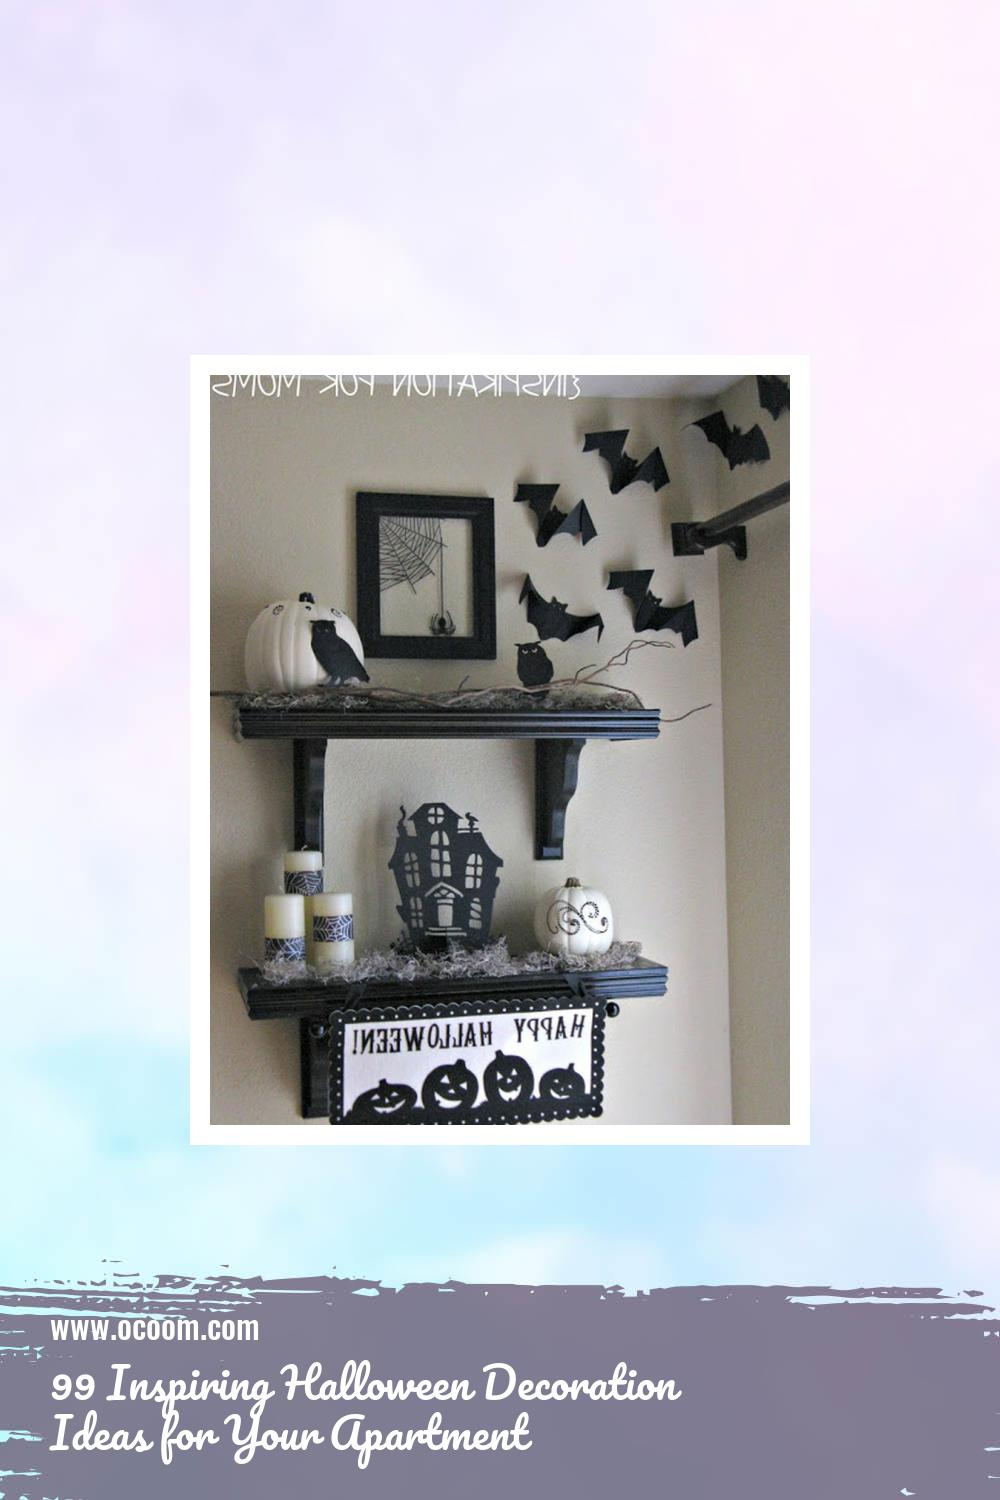 99 Inspiring Halloween Decoration Ideas for Your Apartment 53